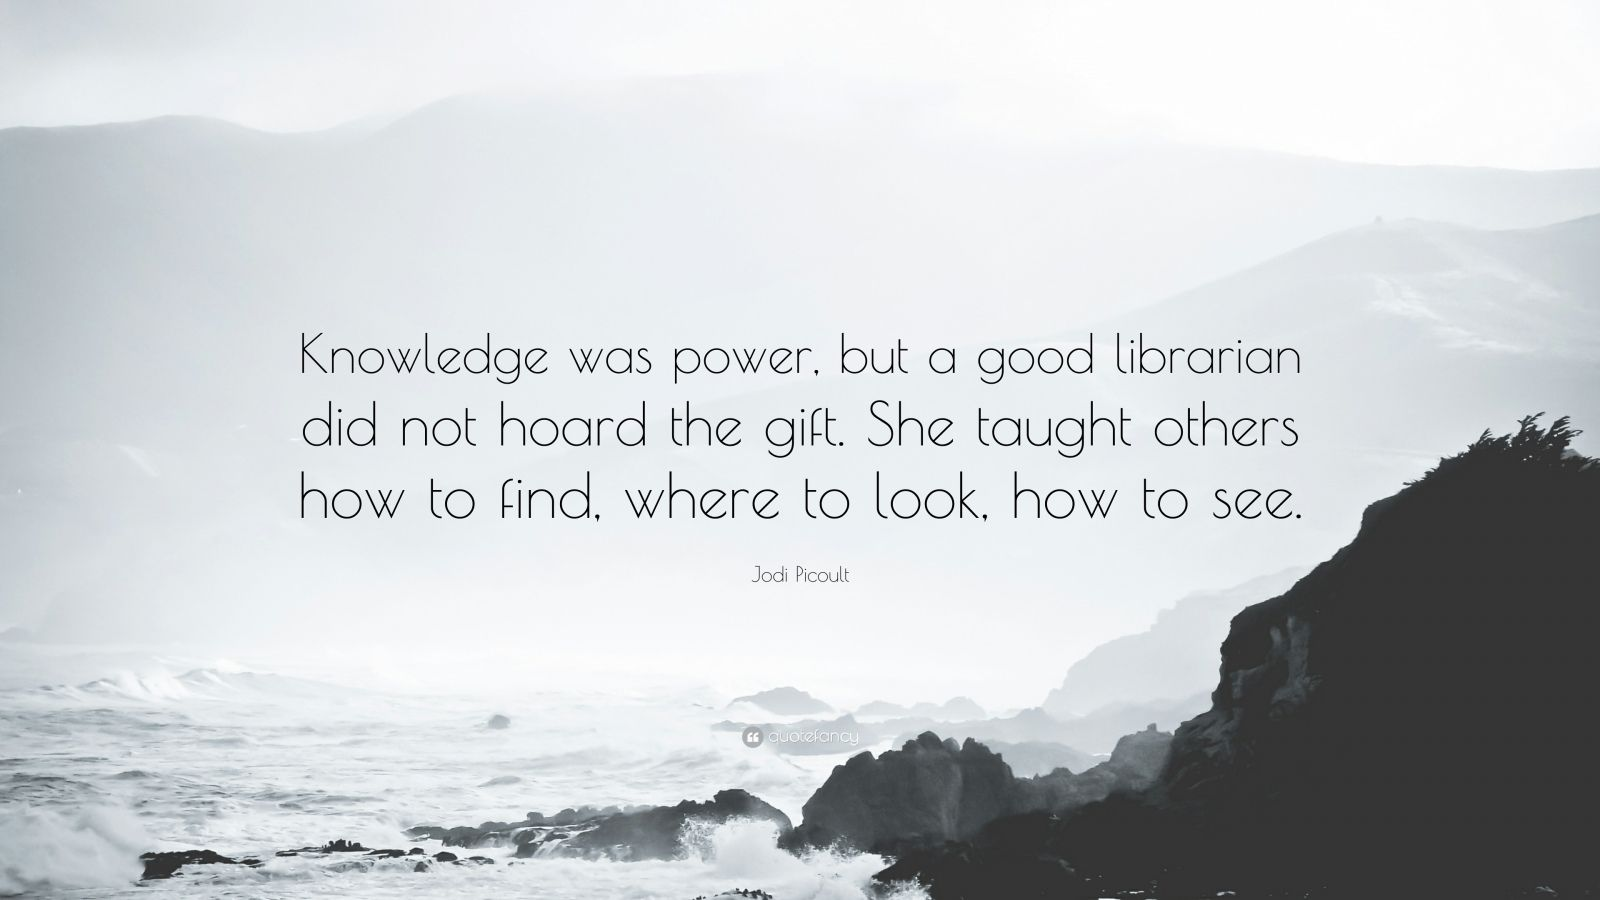 """Jodi Picoult Quote: """"Knowledge was power, but a good librarian did not hoard the gift. She taught others how to find, where to look, how to see."""""""